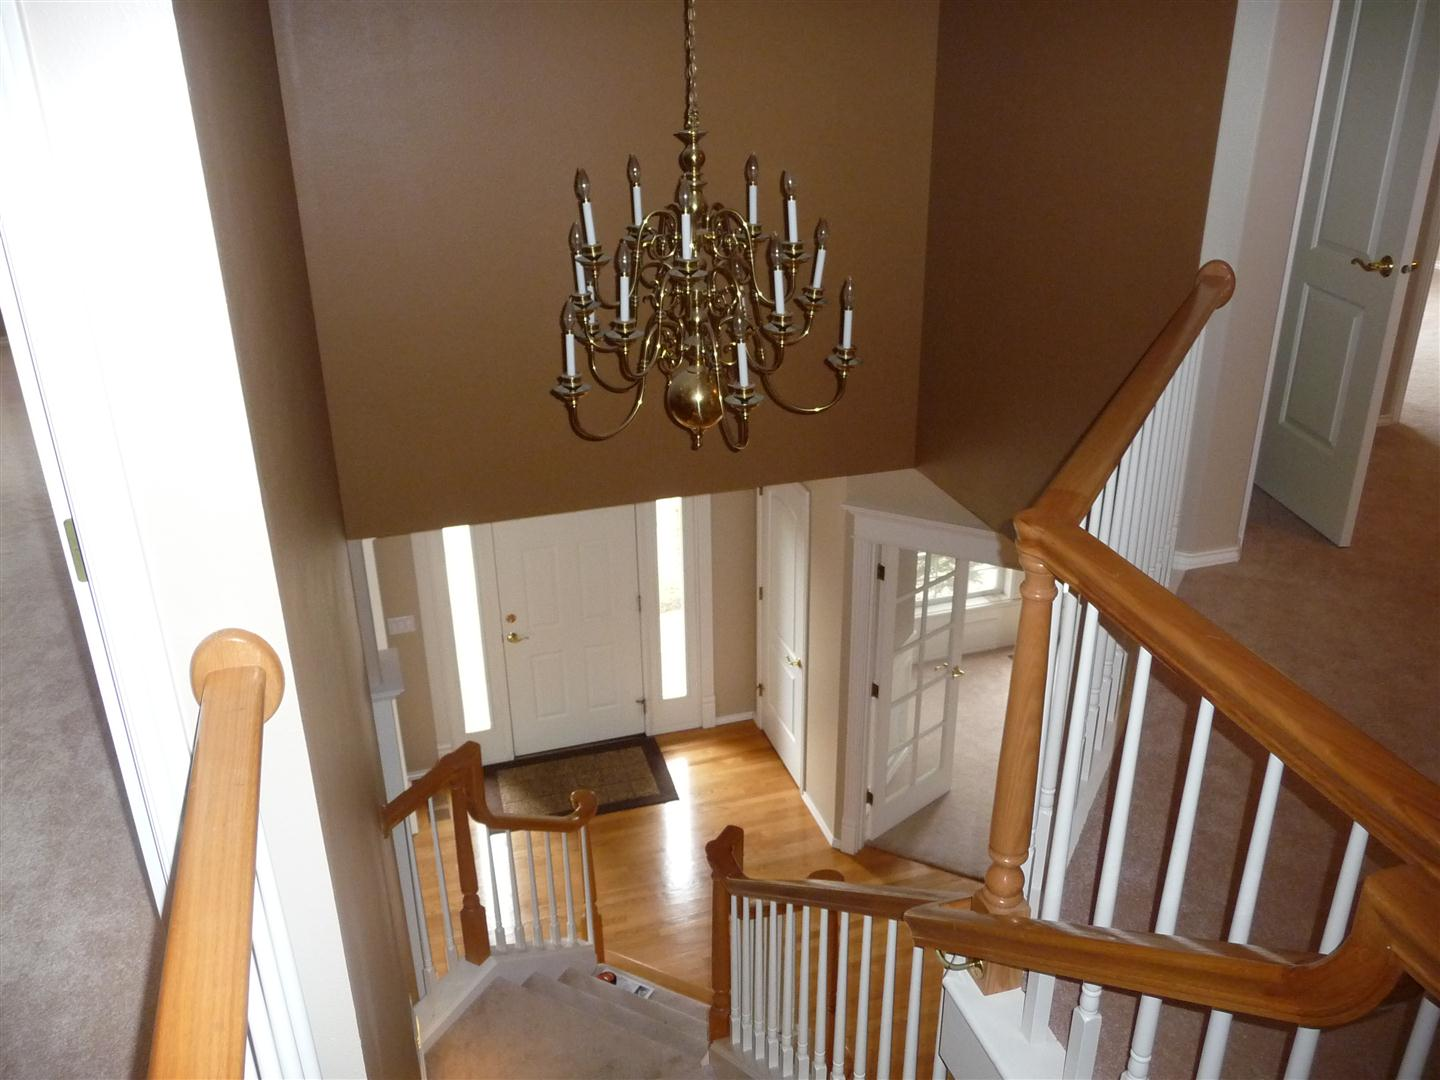 replacing chandelier entry is 2